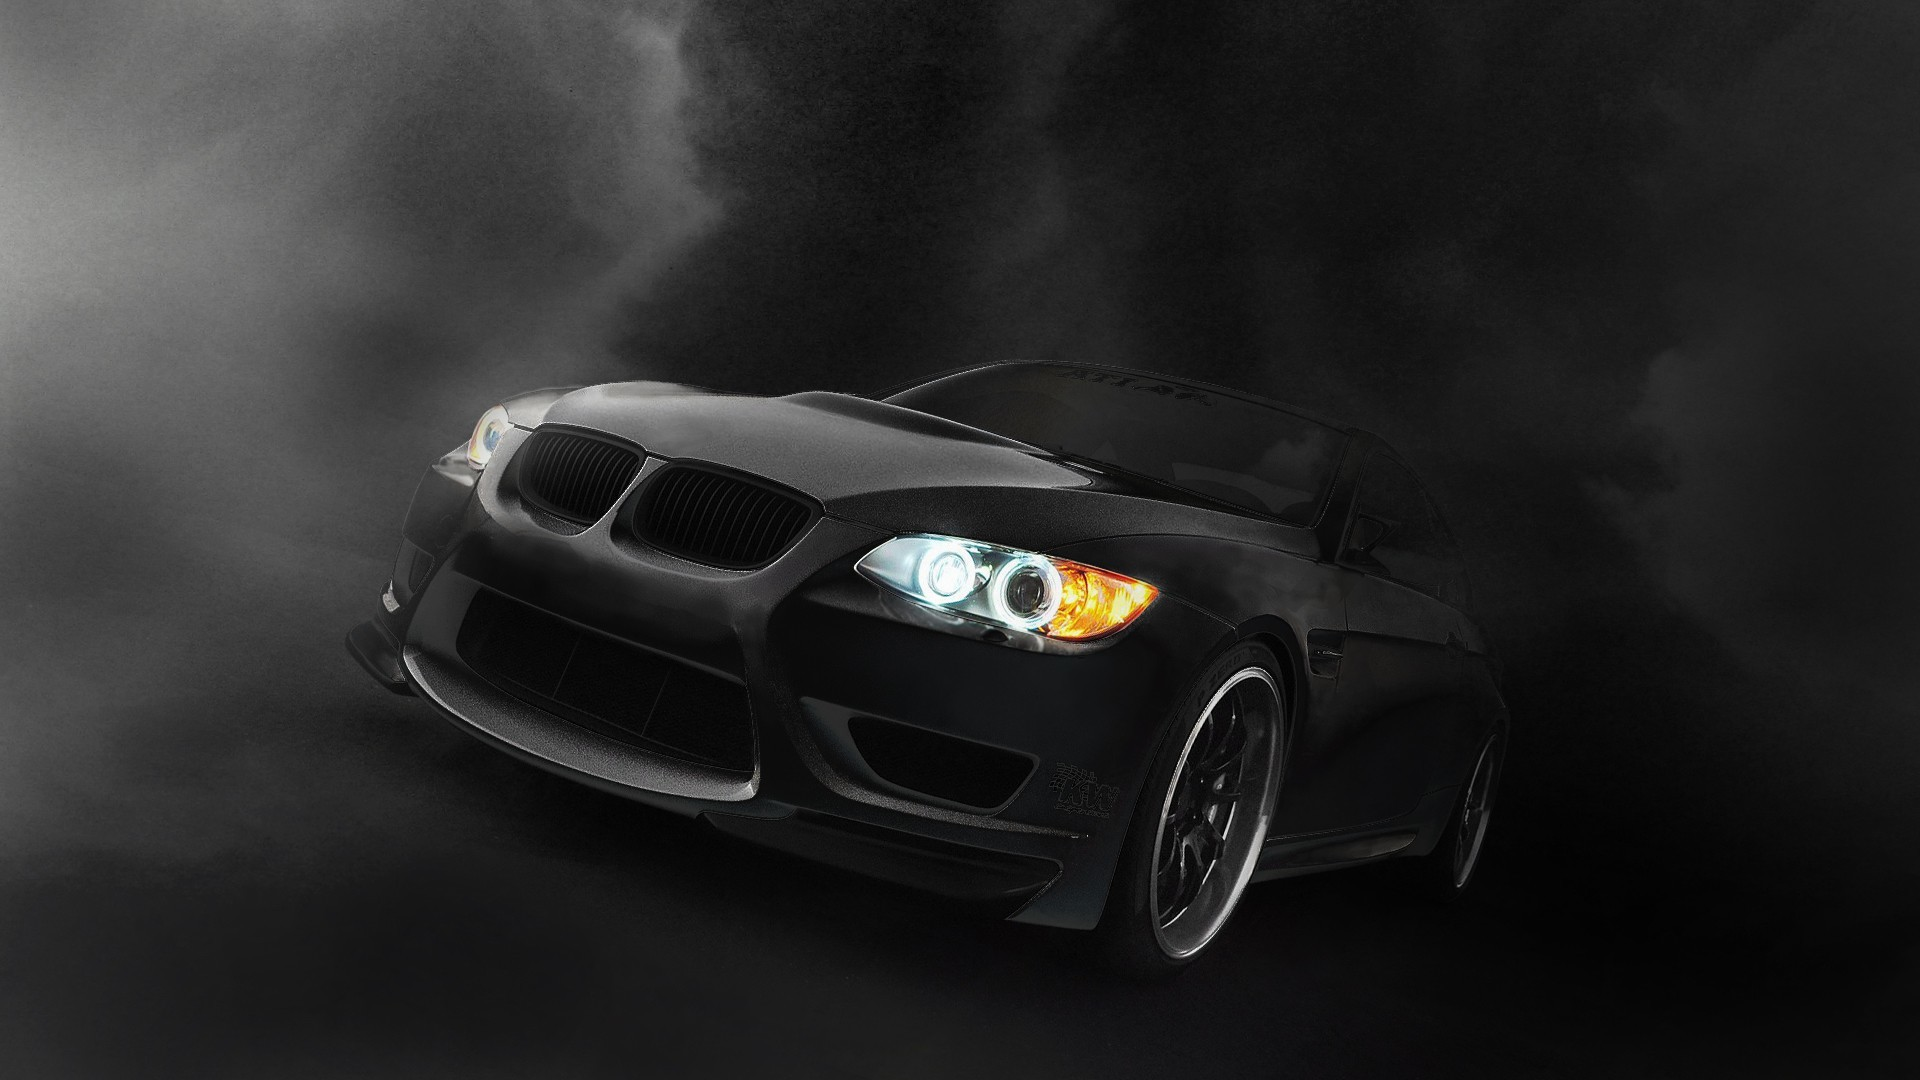 BMW black dark cars HD Wallpaper